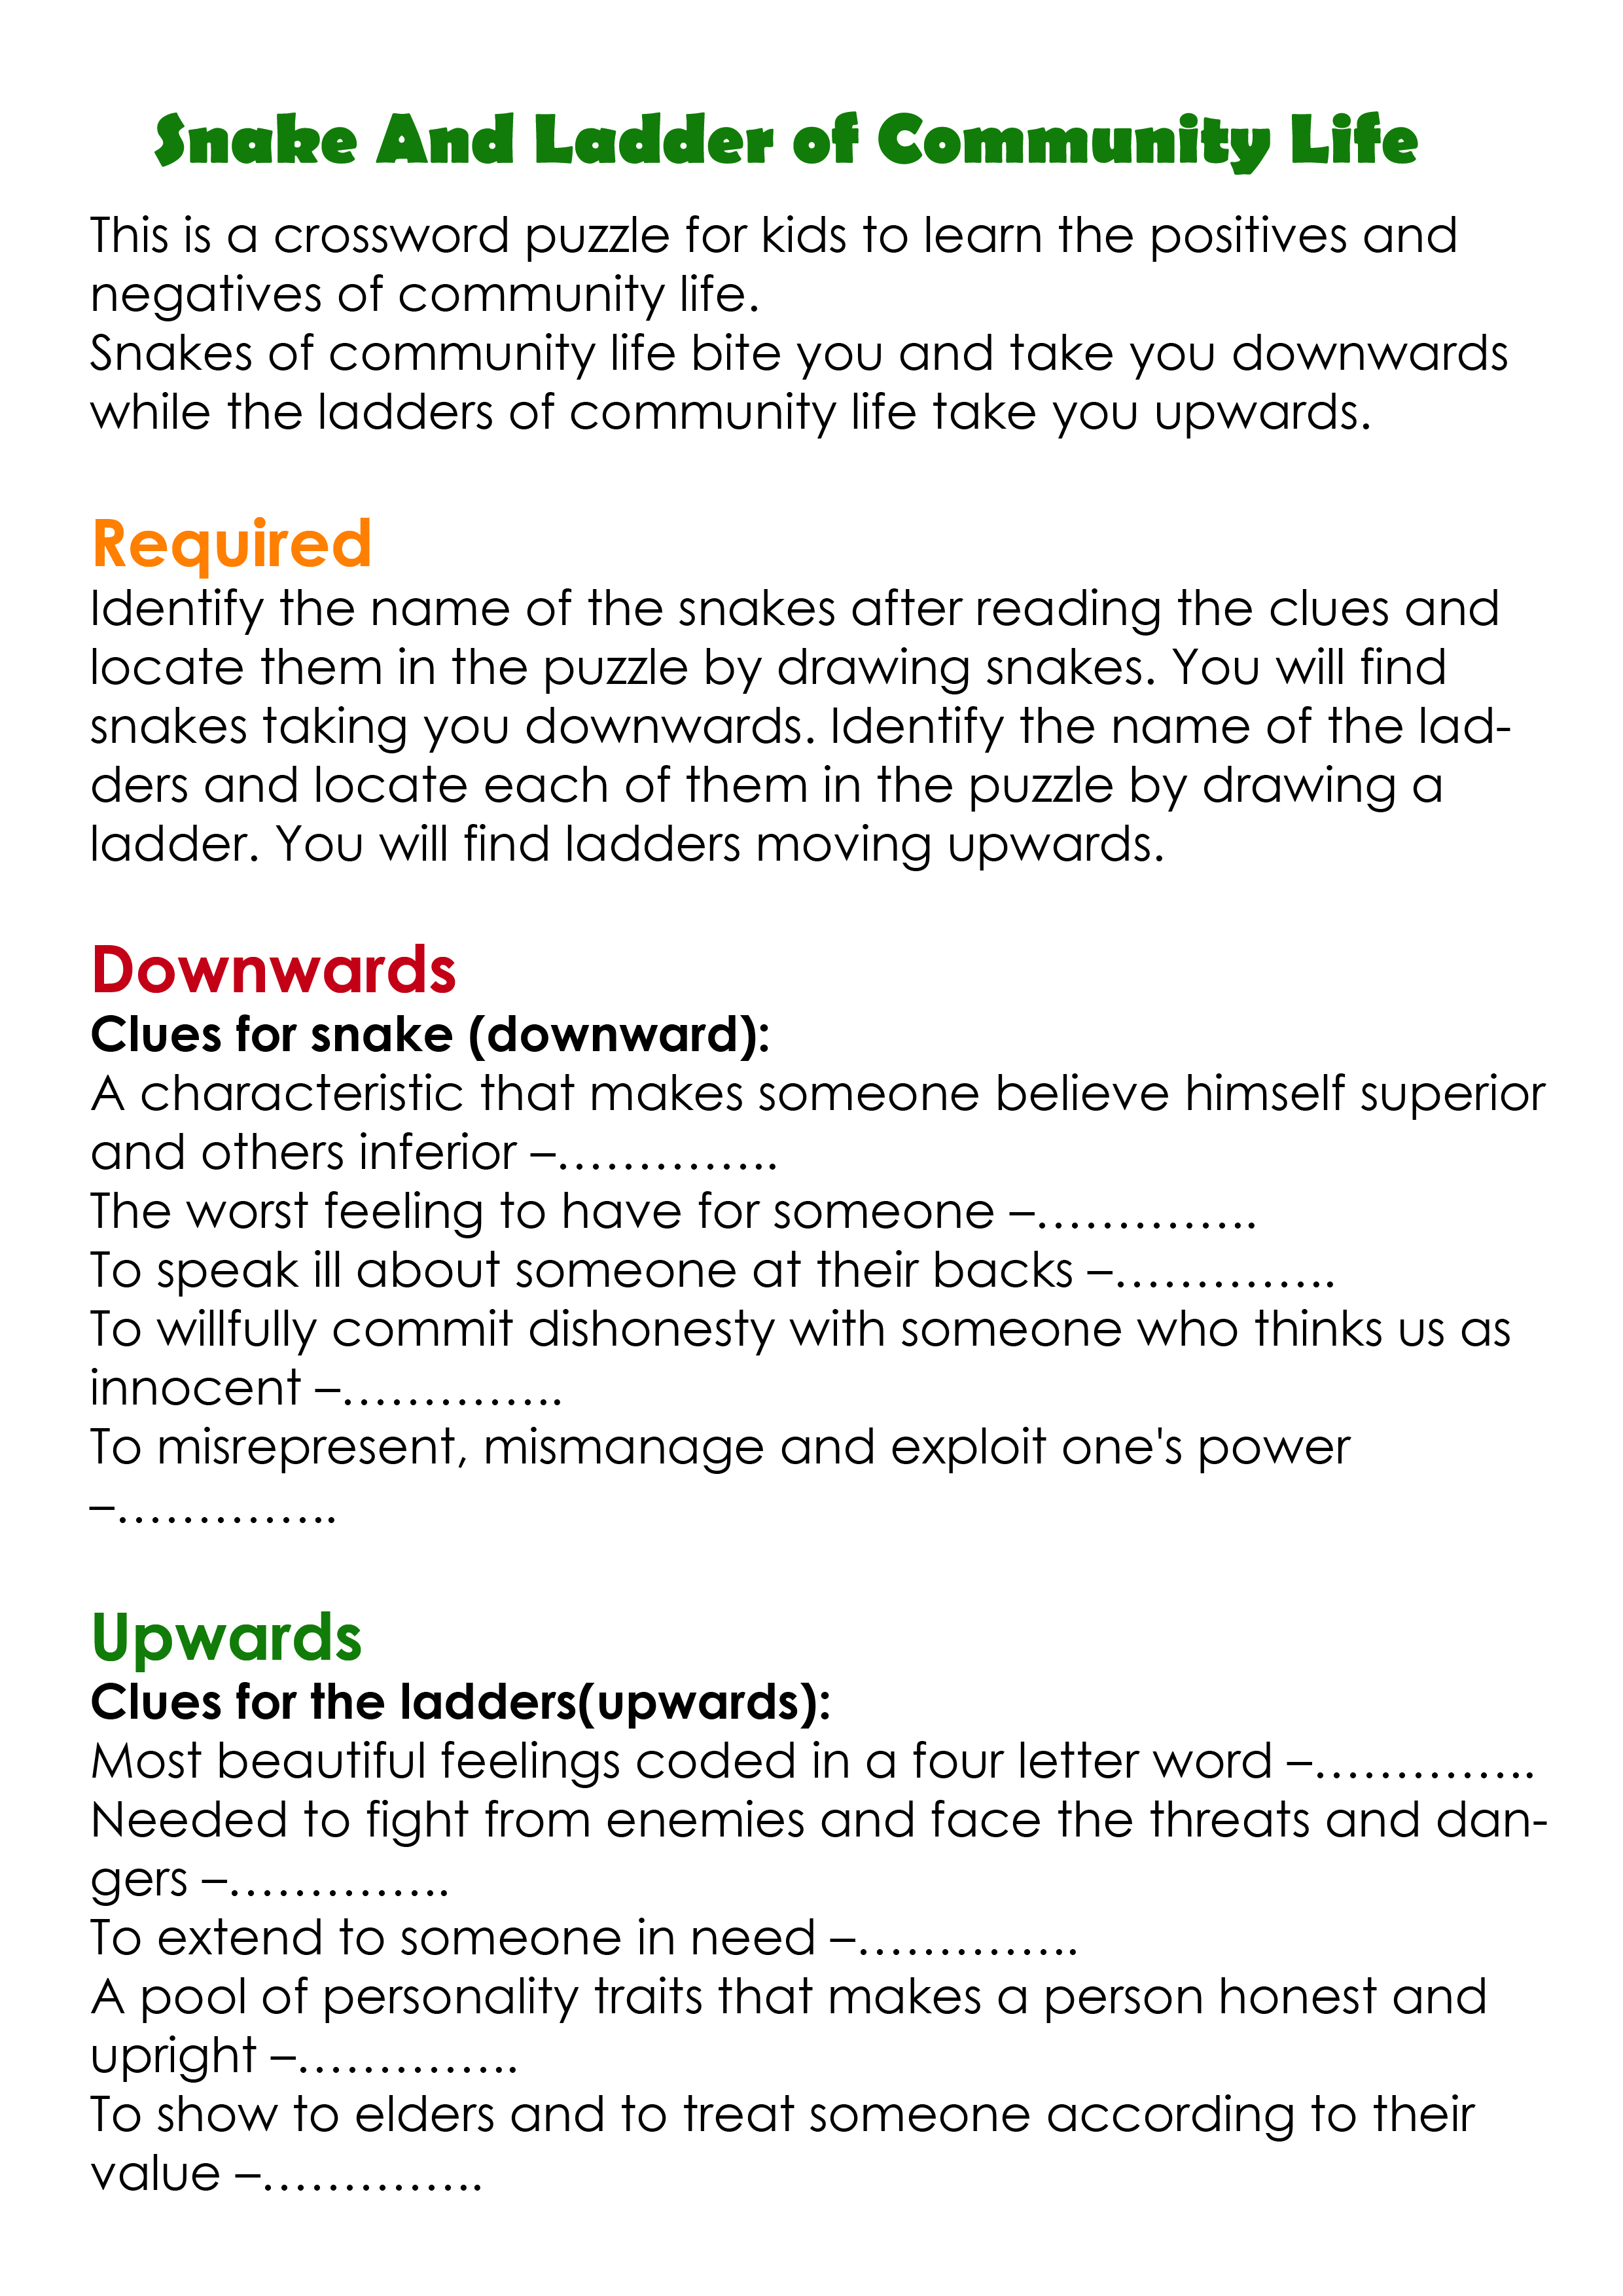 Snake Ladder Of Community Life Printable Activity Words